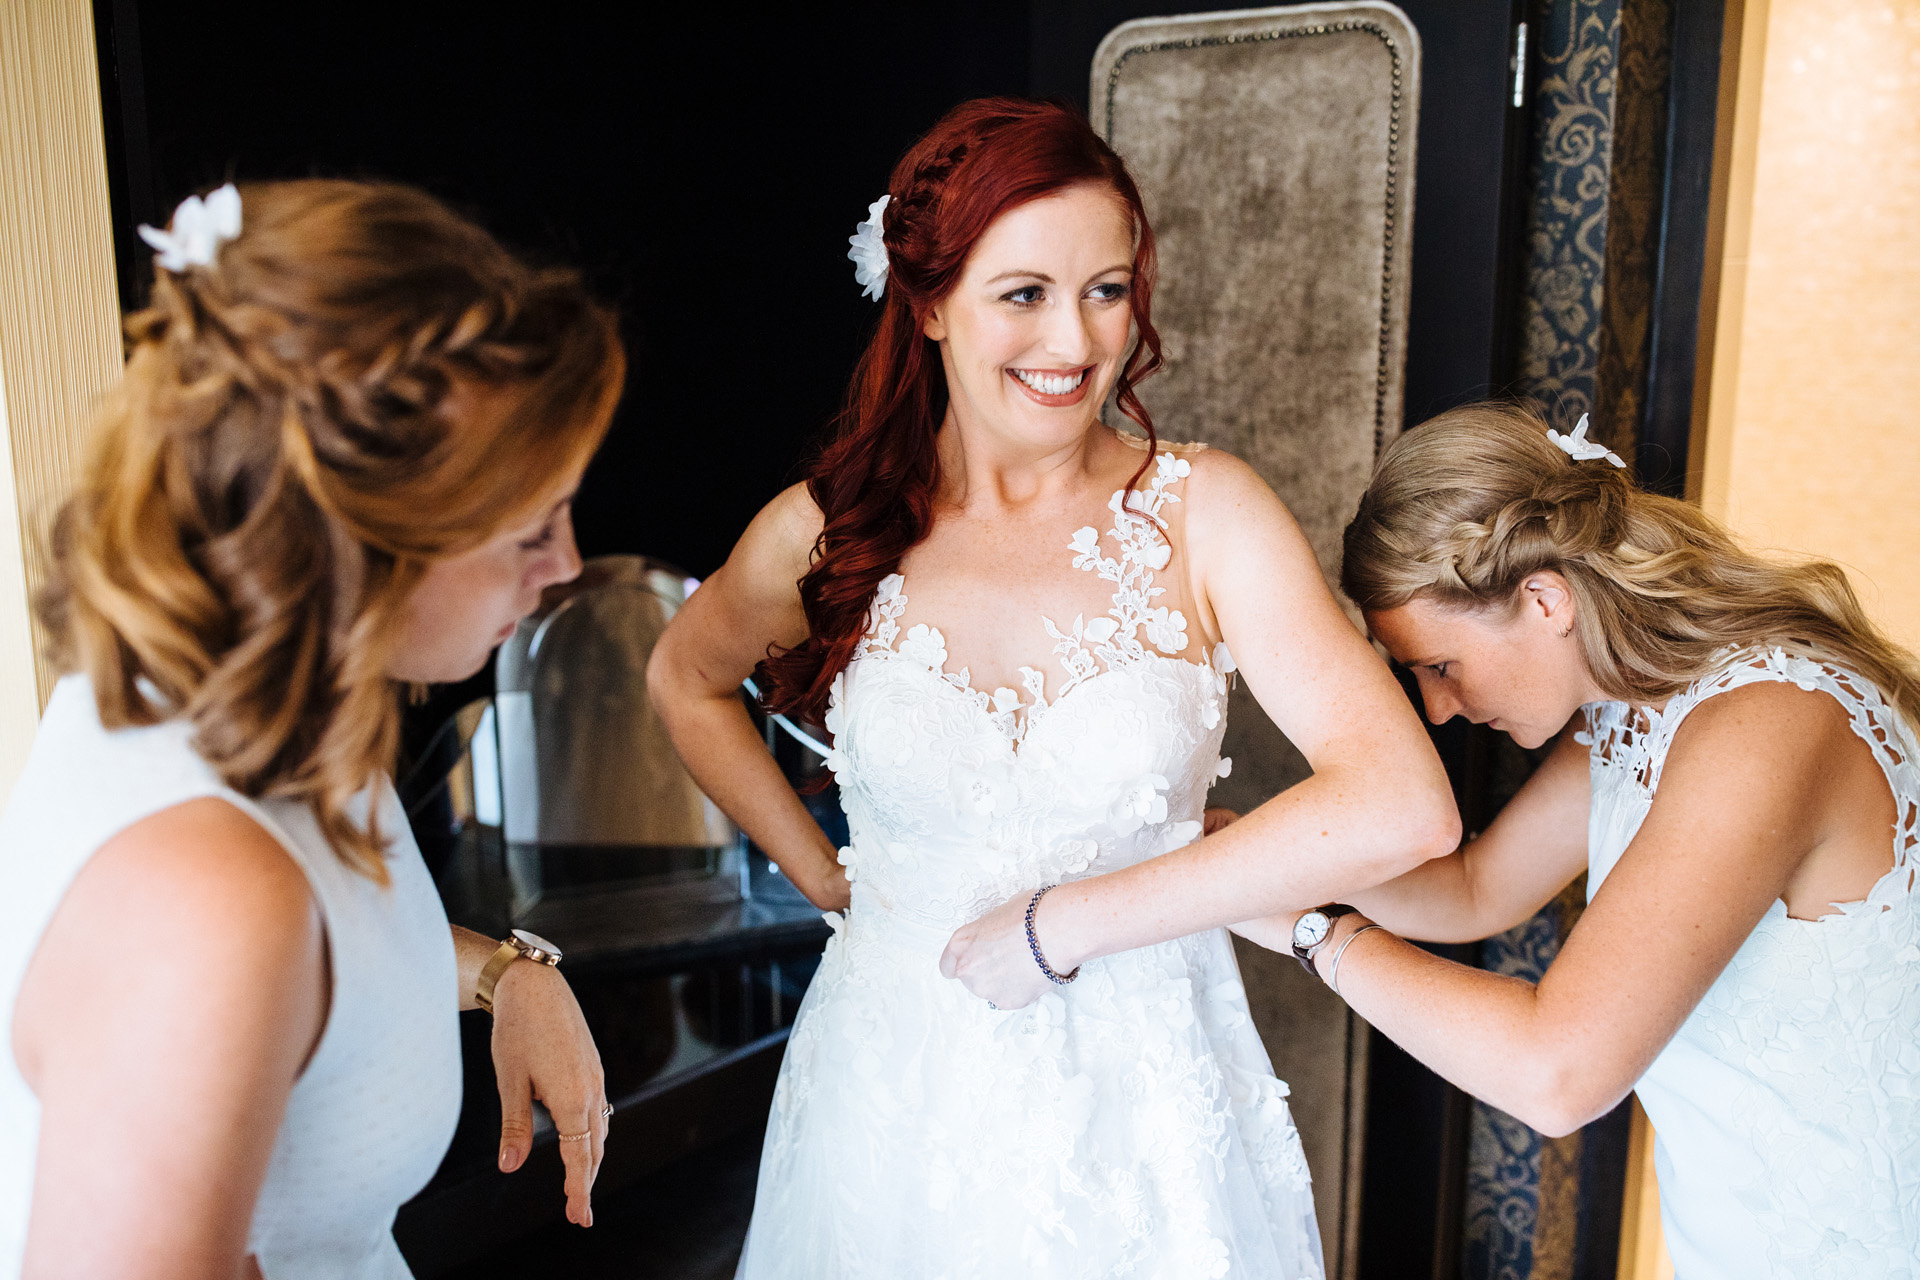 bridesmaids helping bride put on her white wedding dress with floral detail